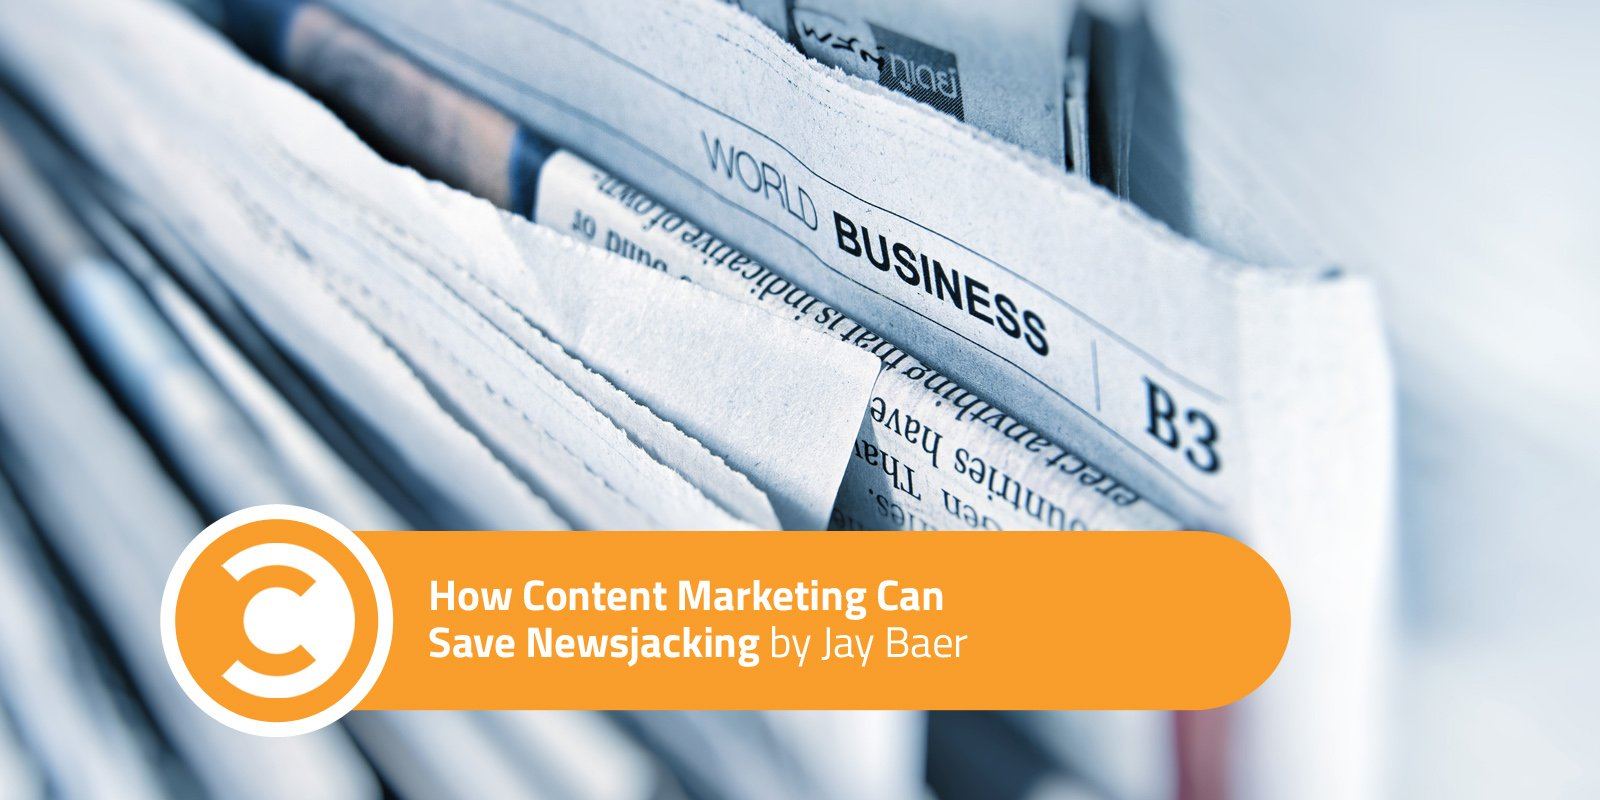 How Content Marketing Can Save Newsjacking